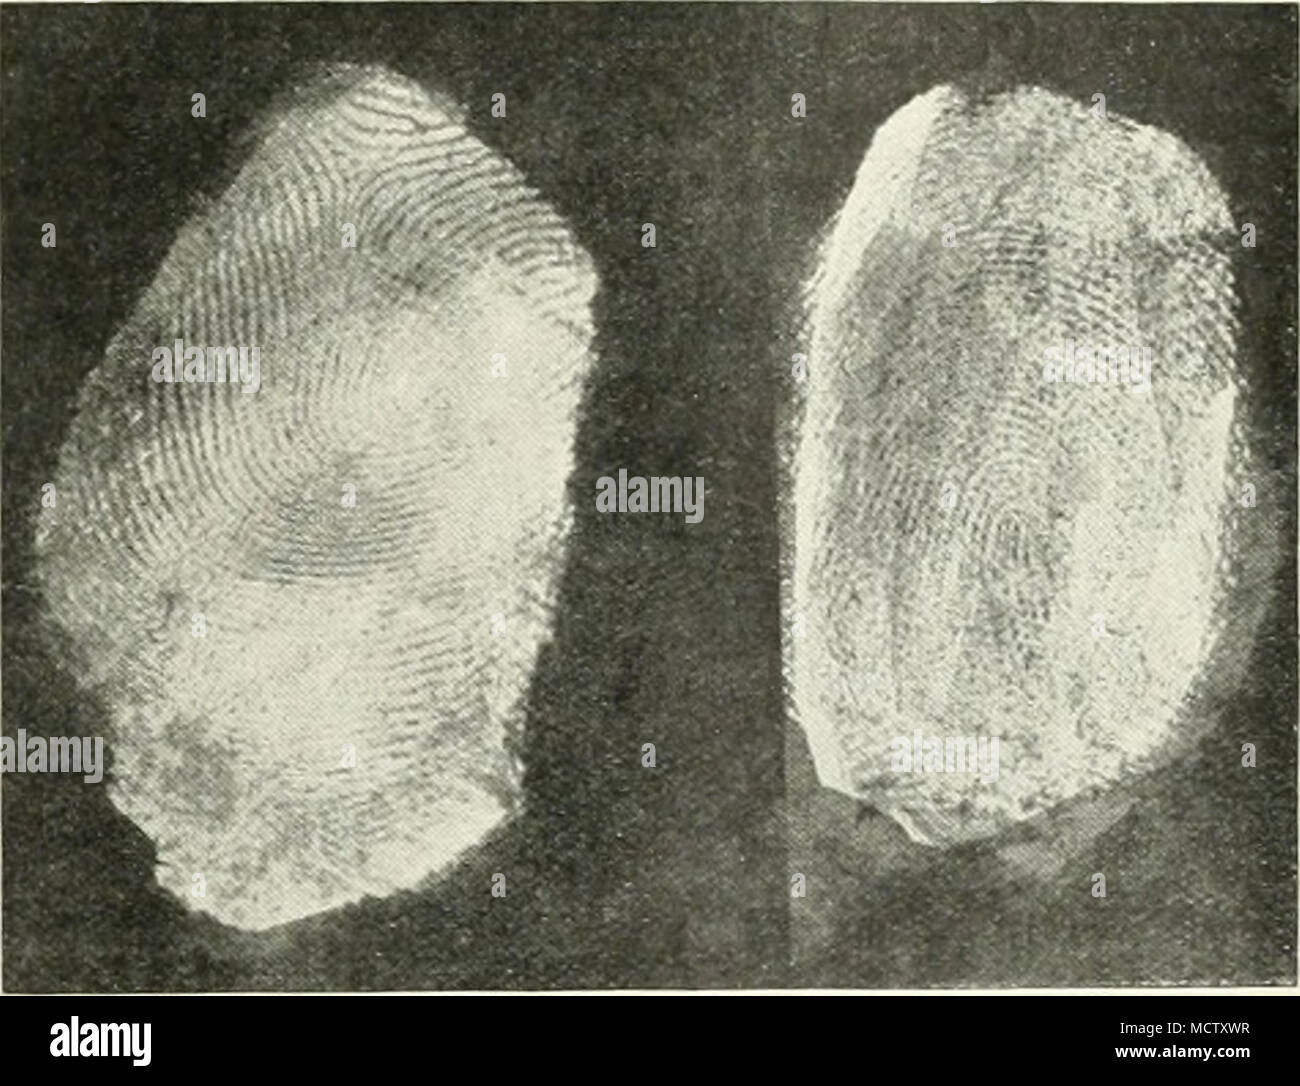 """. Fi:.. ;. Fig. 3. Fig. 2.âFINGER-PRINT DEVELOPED .FTER THREE YE-ARS WITH â ⢠SV.A.N """" INK. Fig. 3.âFINGER-PRINT DEVELOPED AFTER THREE YE.ARS WITH OSMIUM PVROGALLATE. system to the enumeration and classification of the pores on the ridges. The only point in this description which requires some correction is the statement (p. 259) that """" Stockis . . proved experimentally that the wearing of leather or indiarubber gloves need not prevent the formation of finger-prints, and in February igi2, in the Sââ¢â⢠case. Dr. Locard put theory into practice by identifying a gloved burglar with - Stock Image"""